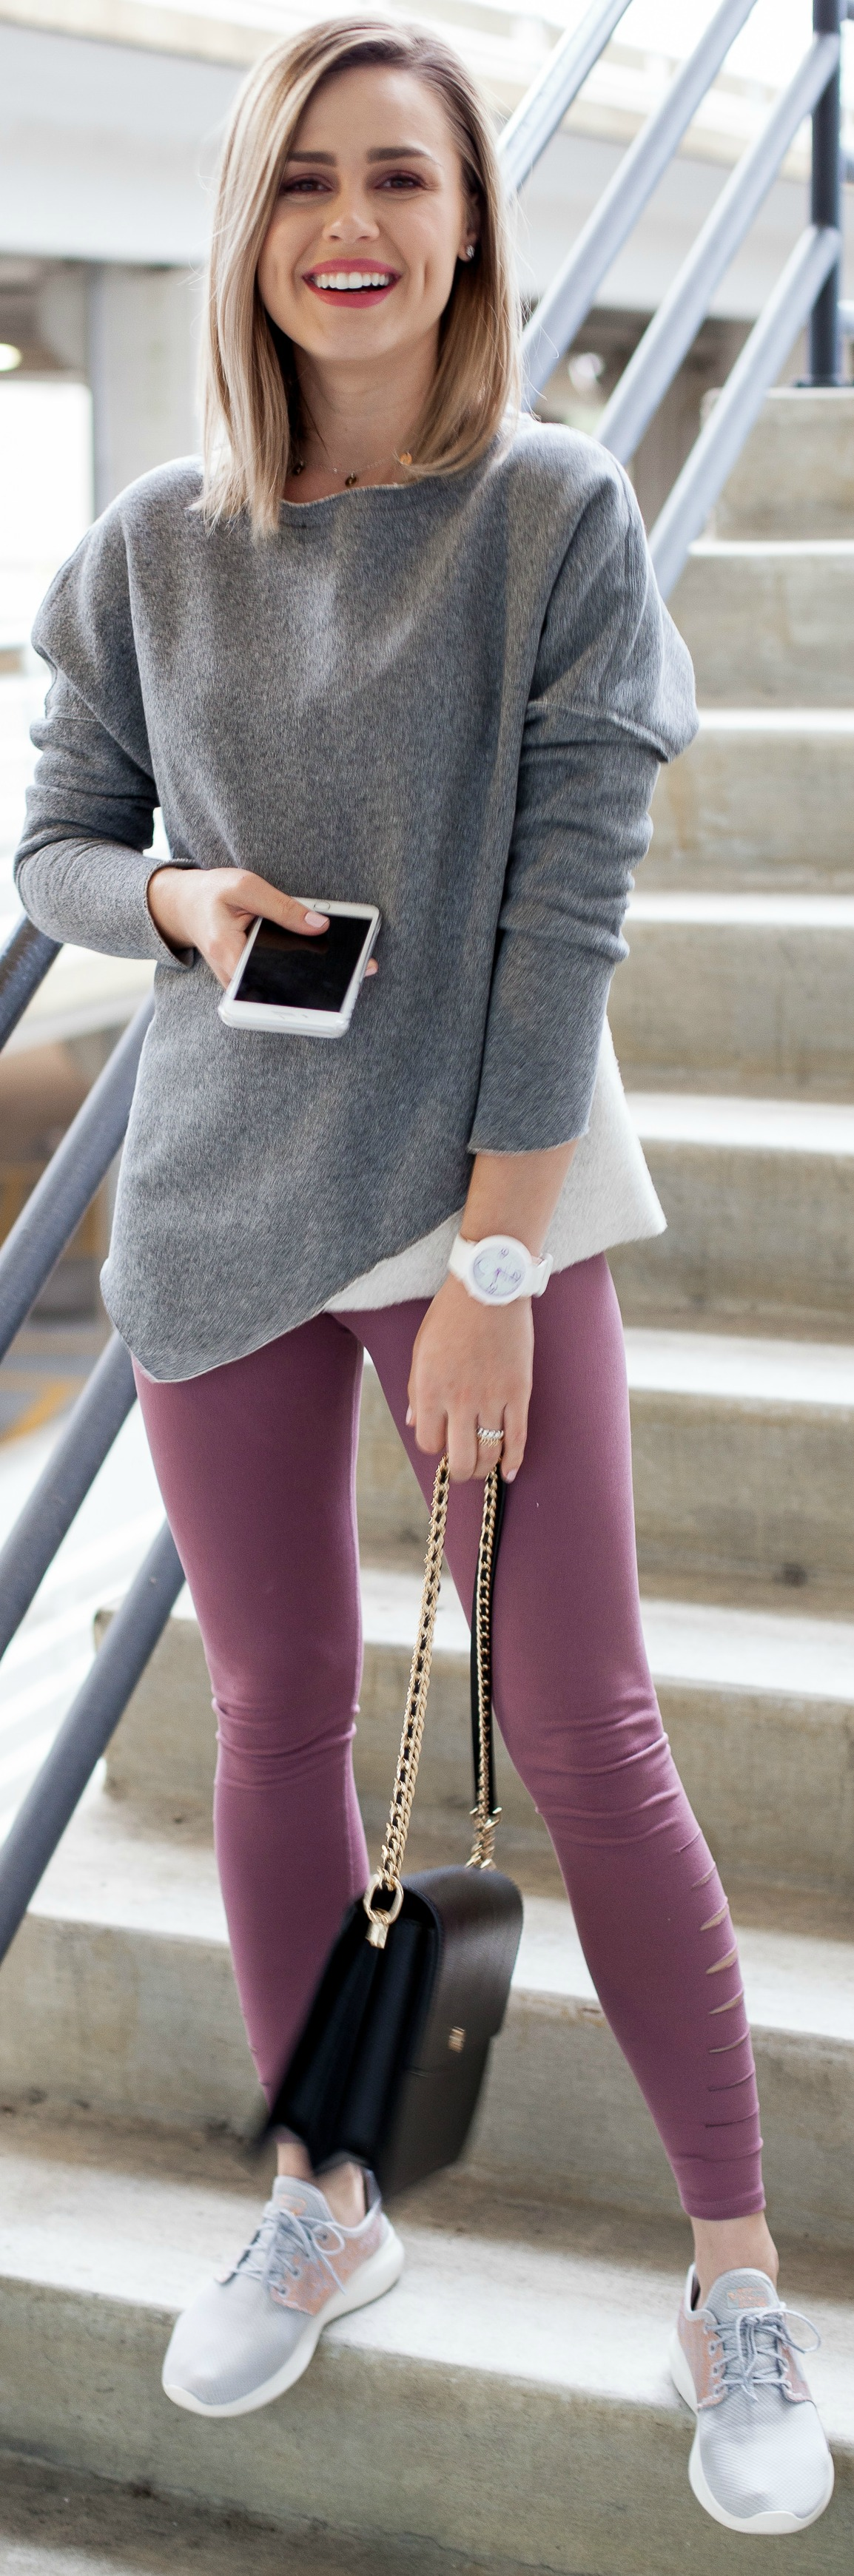 Athleisure Outfit   Casual outfit   chic legging outfit   Abercrombie leggings   Uptown with Elly Brown